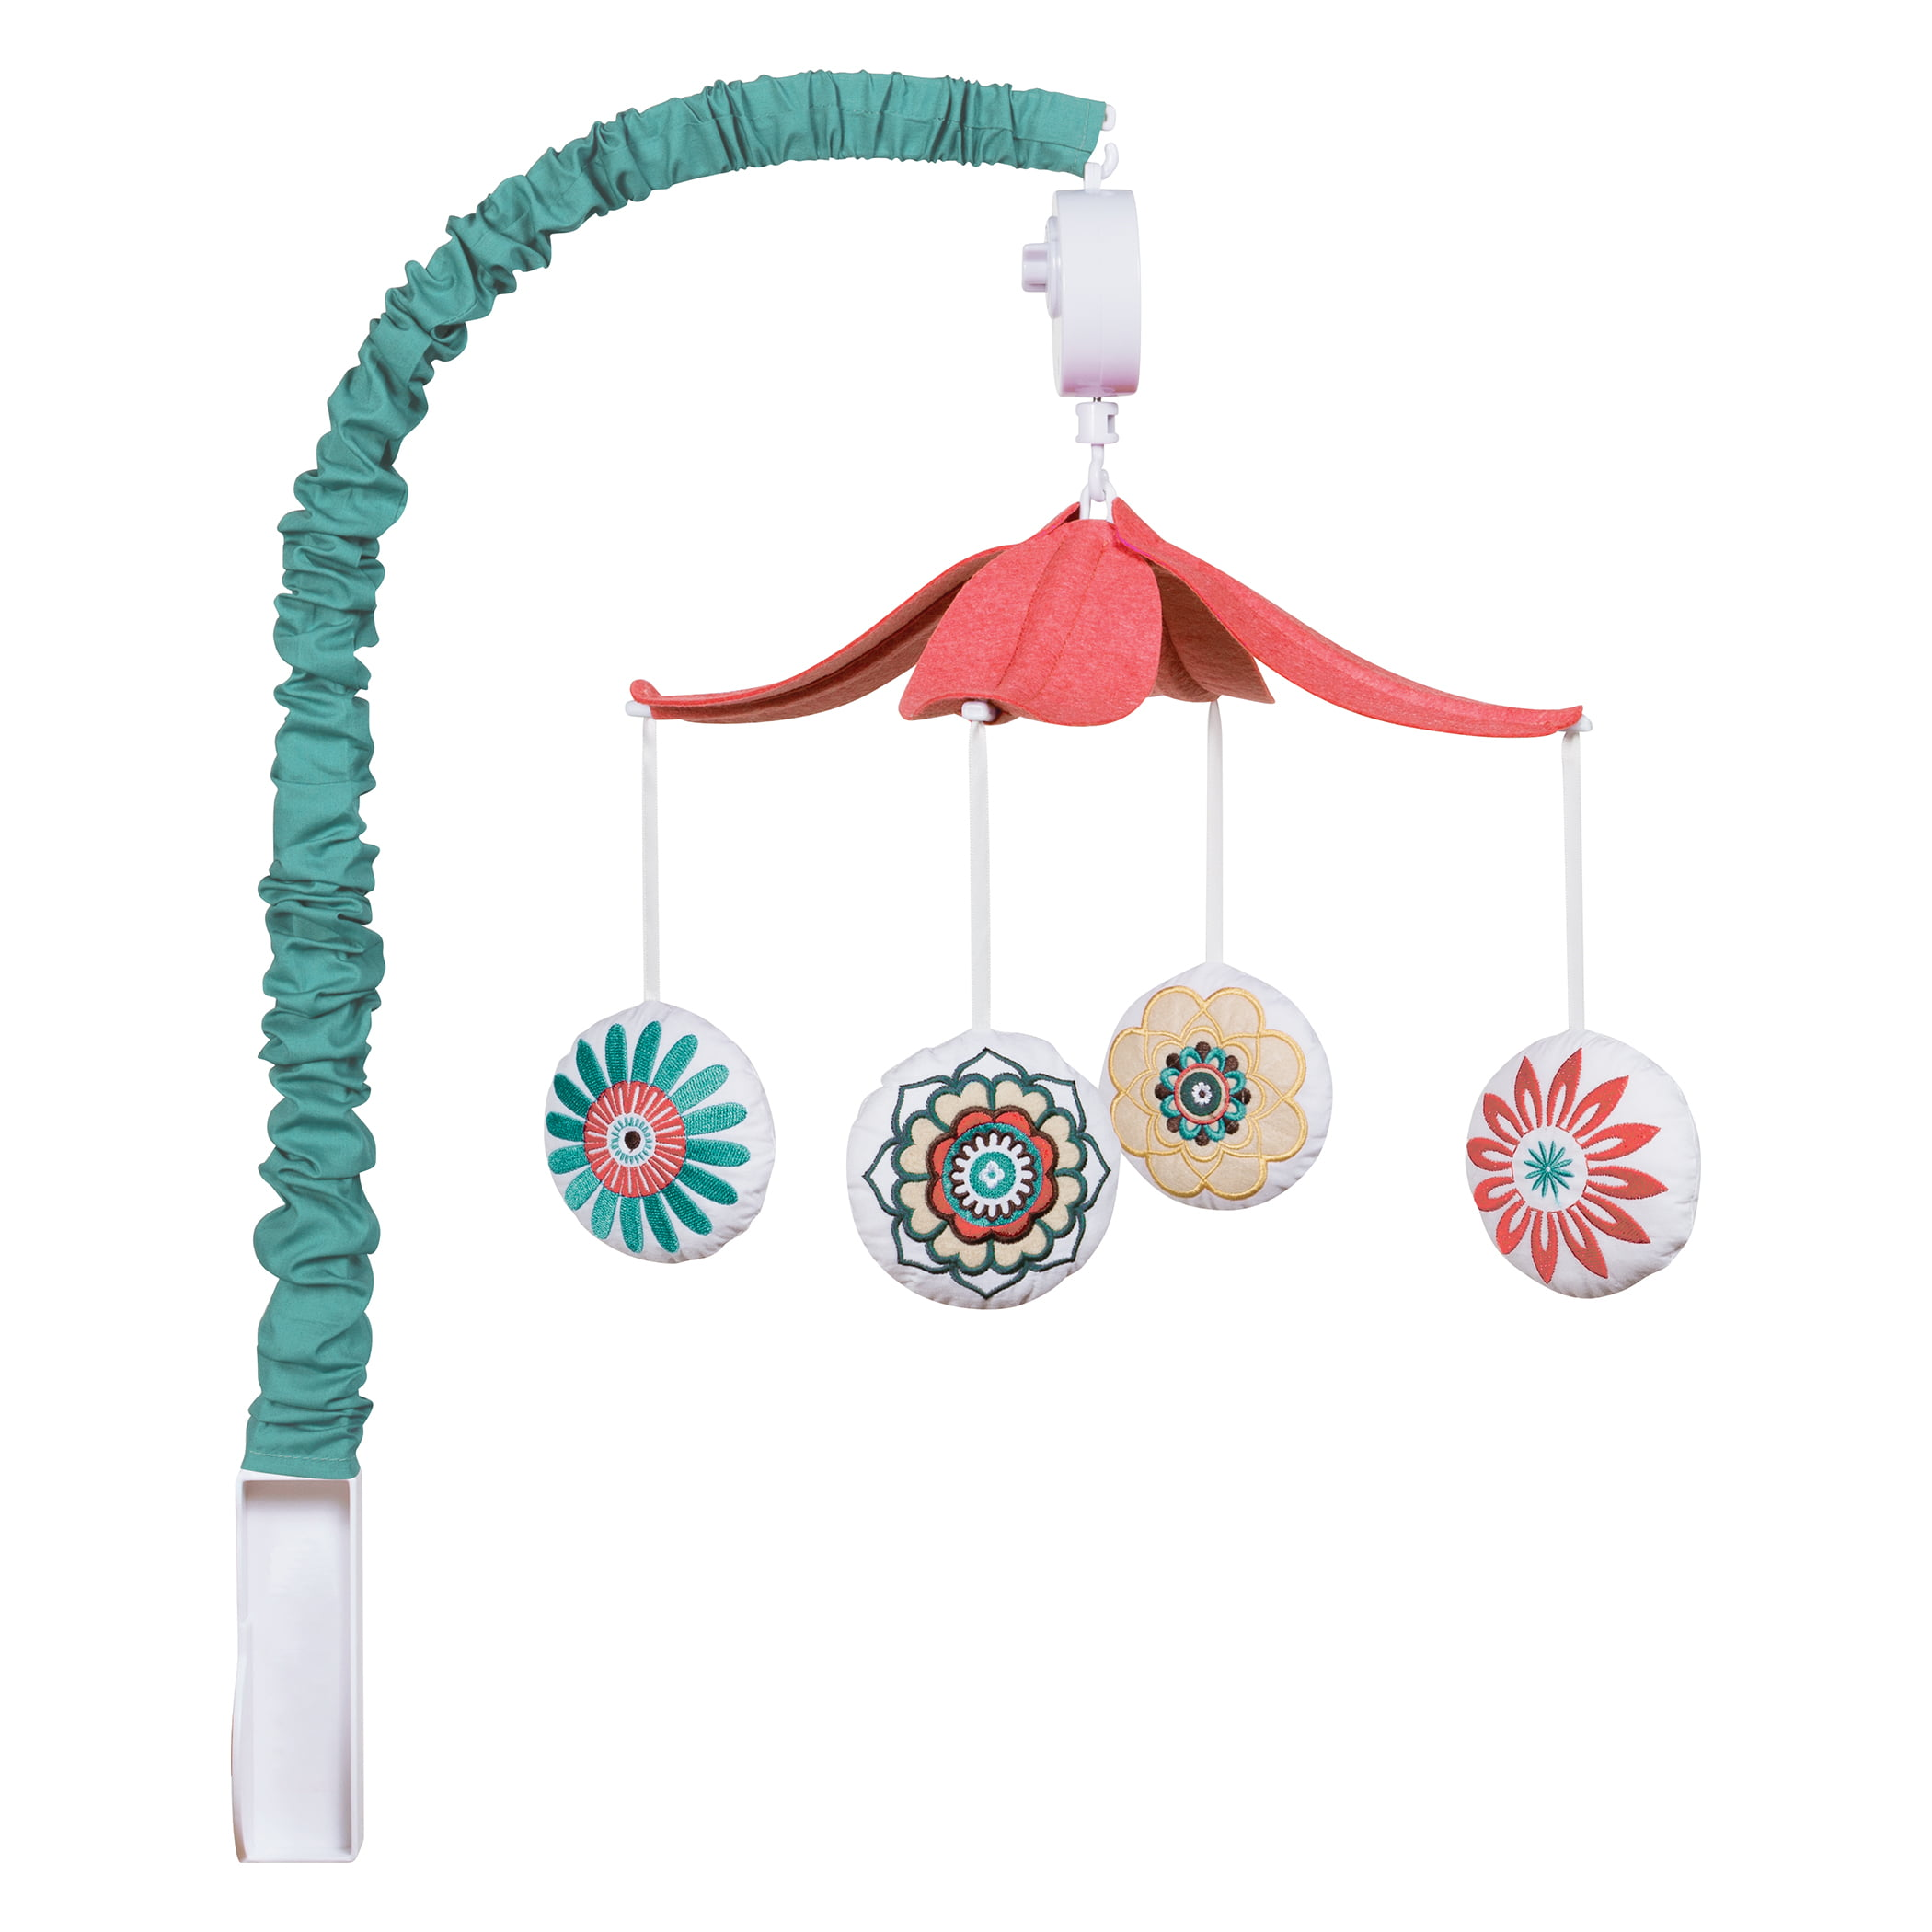 Waverly Pom Pom Play Musical Mobile by Waverly